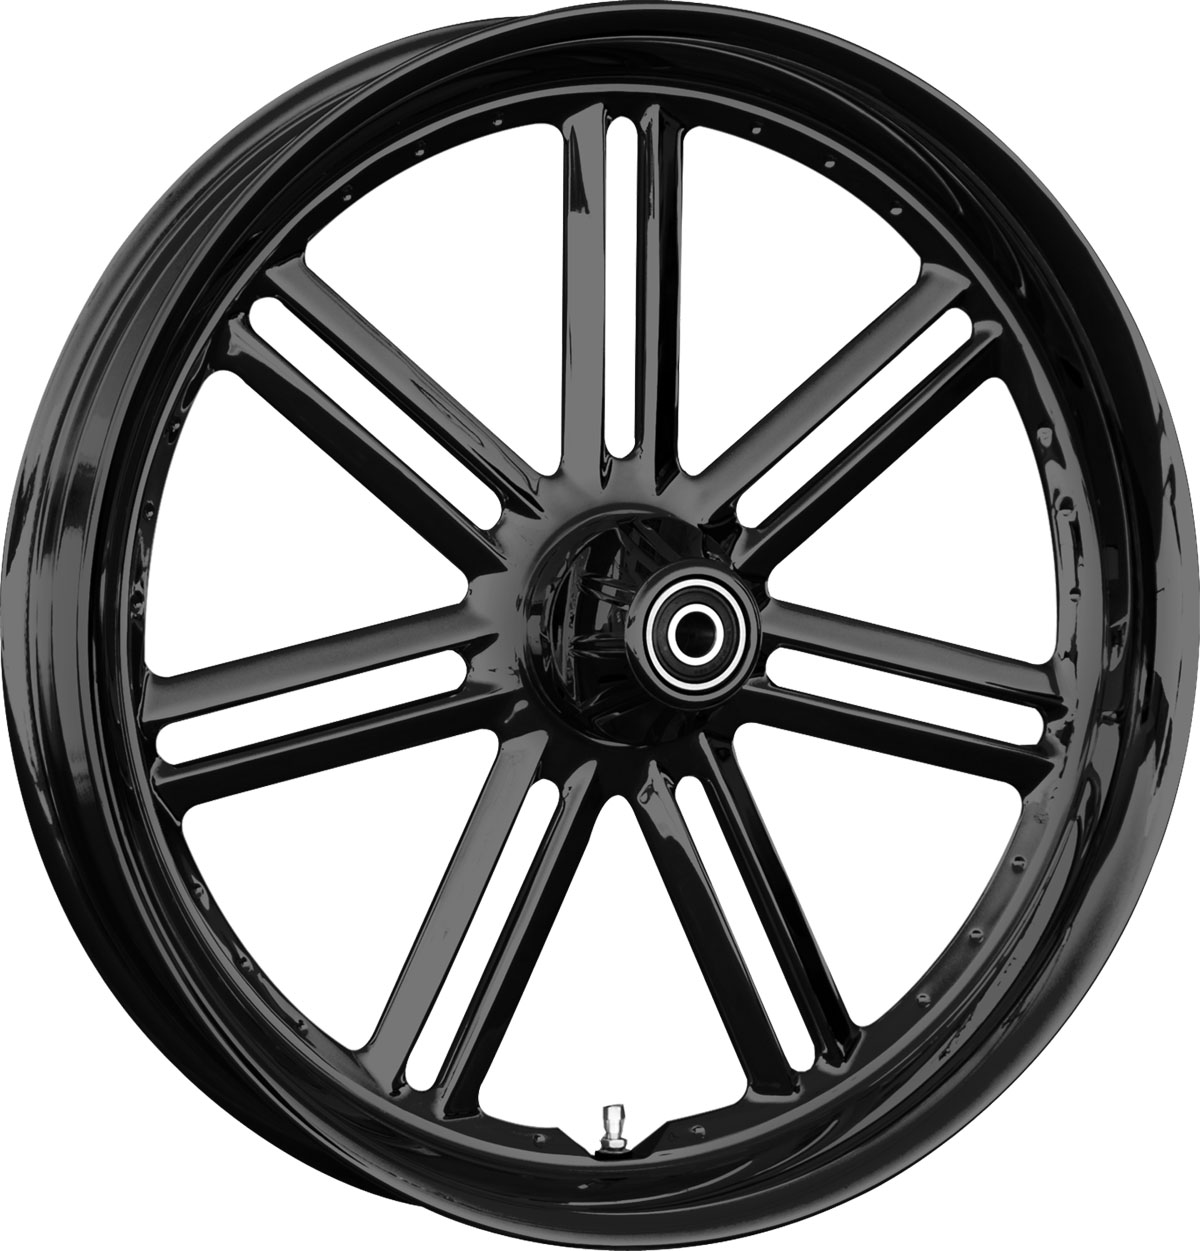 Colorado Custom Motorcycle Wheels - Black - Sunset (CCW-BSUNSET) by